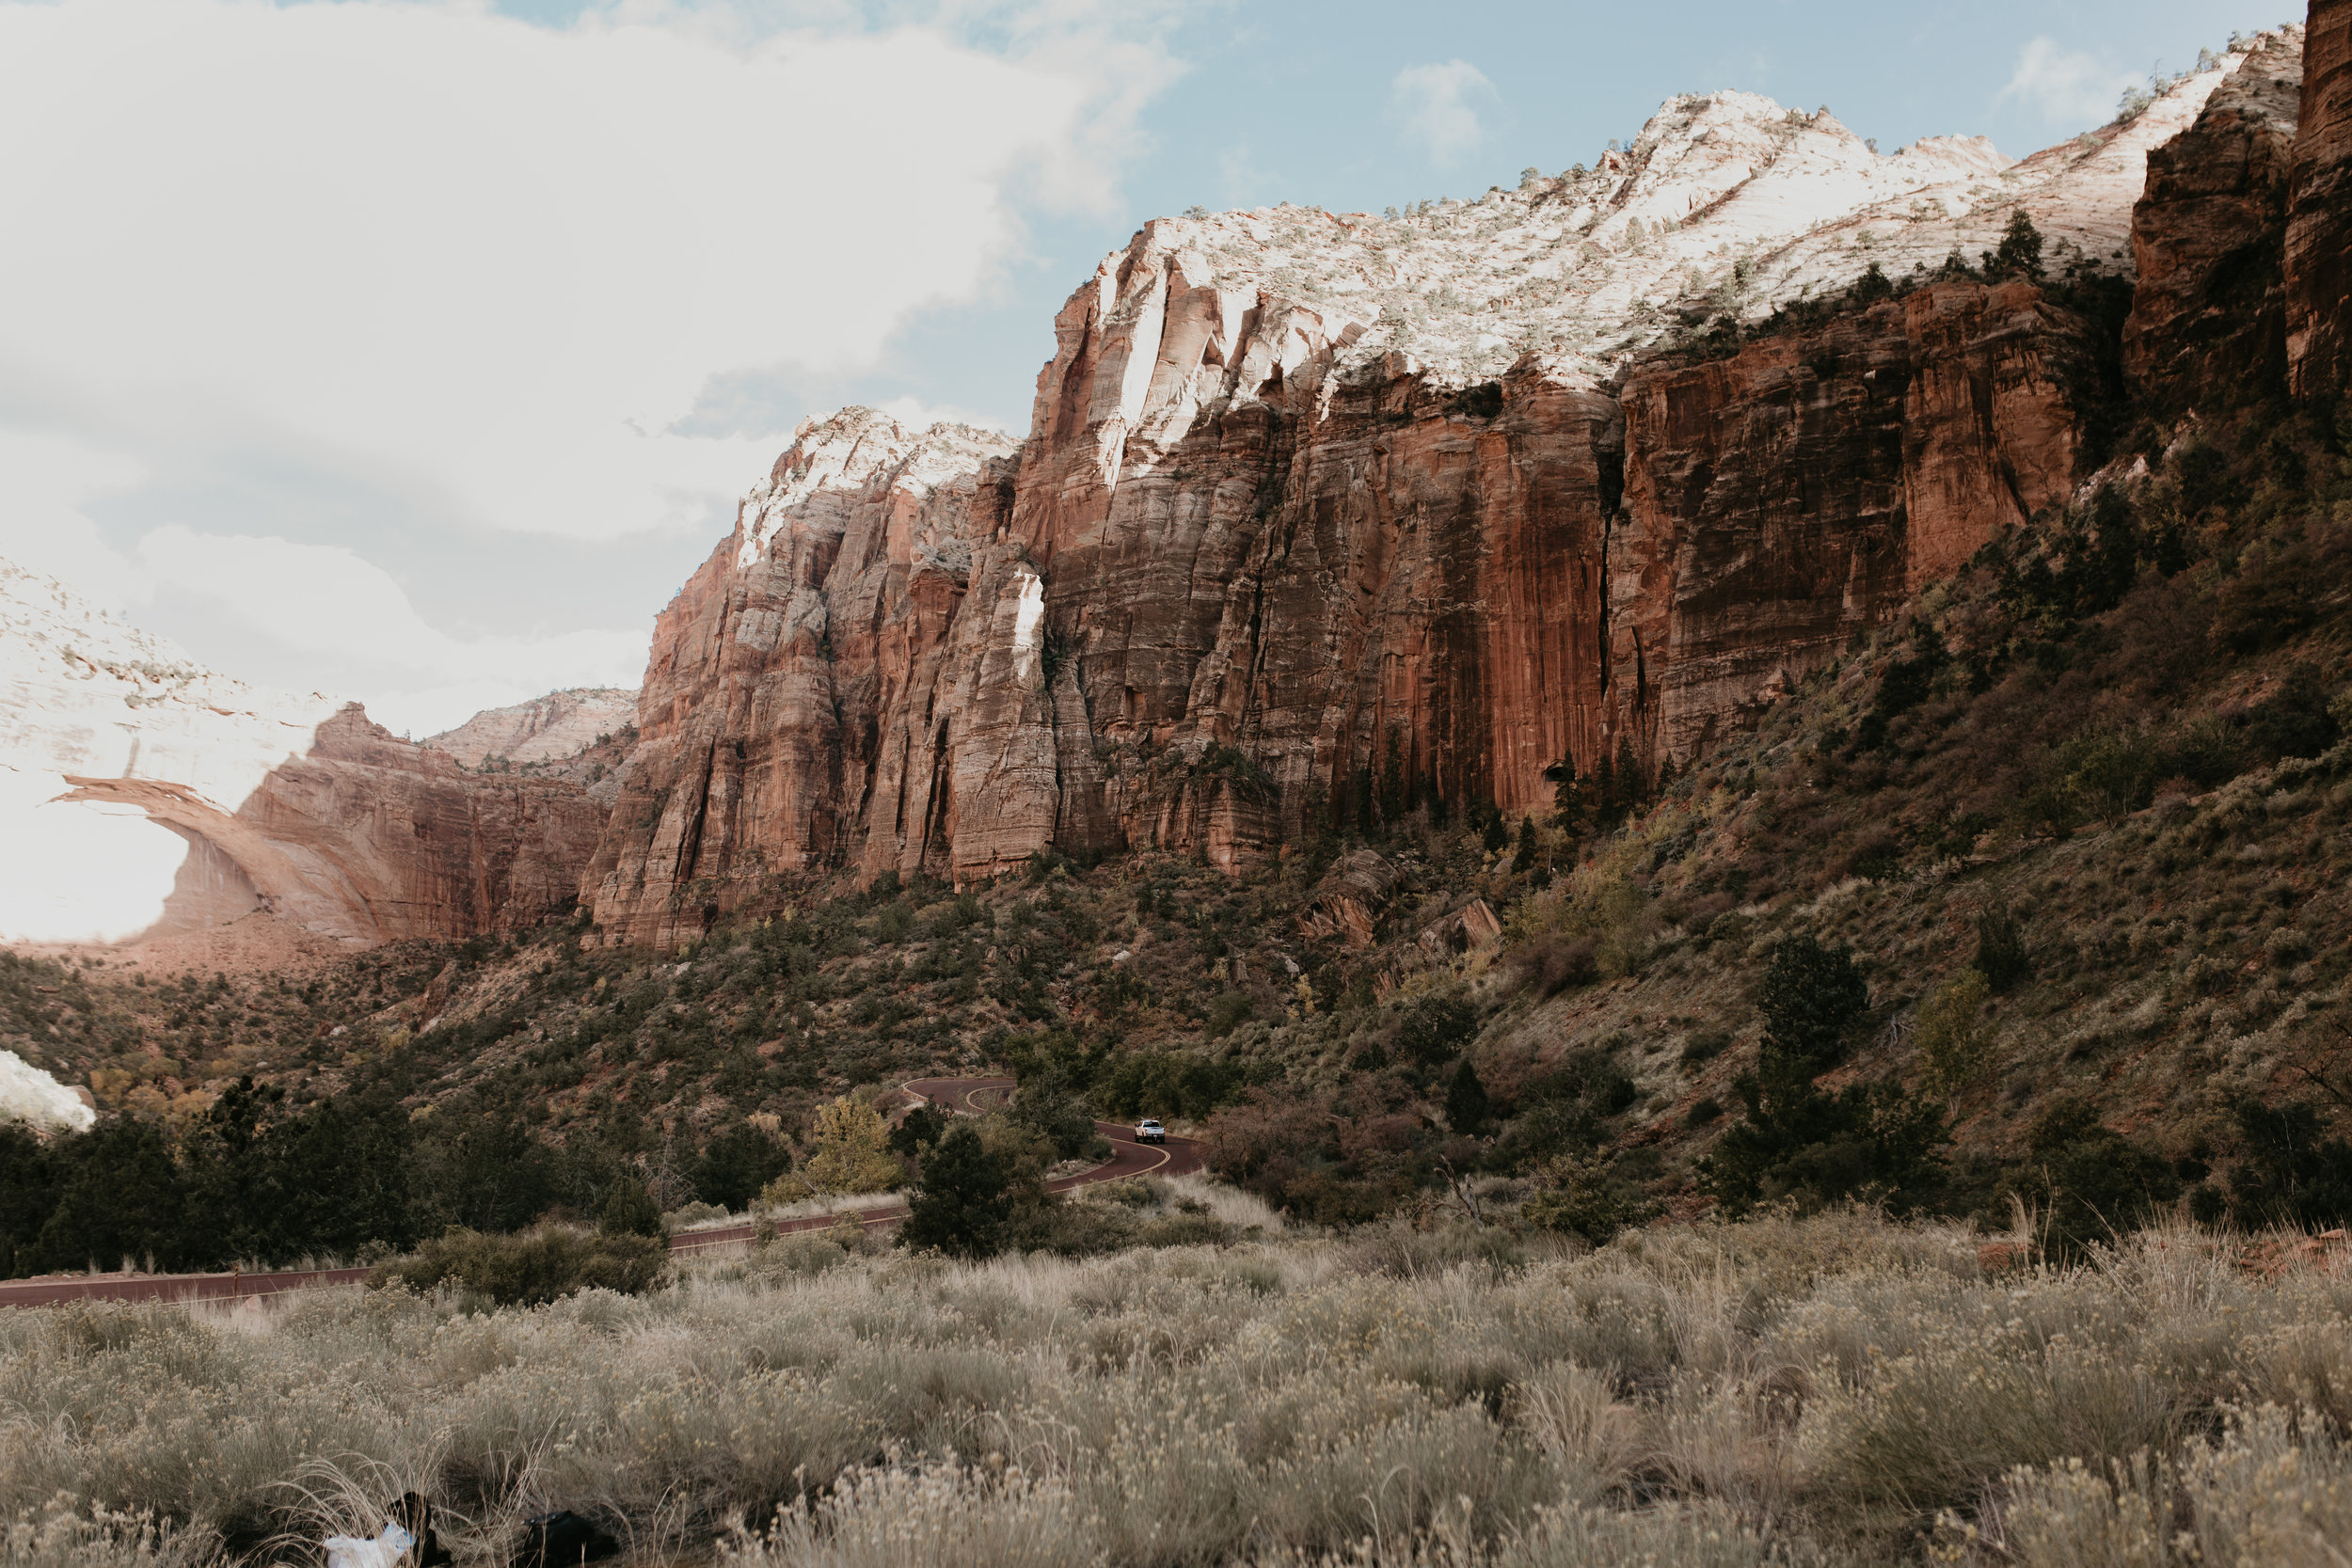 nicole-daacke-photography-zion-national-park-elopement-photographer-canyon-overlook-trail-elope-hiking-adventure-wedding-photos-fall-utah-red-rock-canyon-stgeorge-eloping-photographer-12.jpg